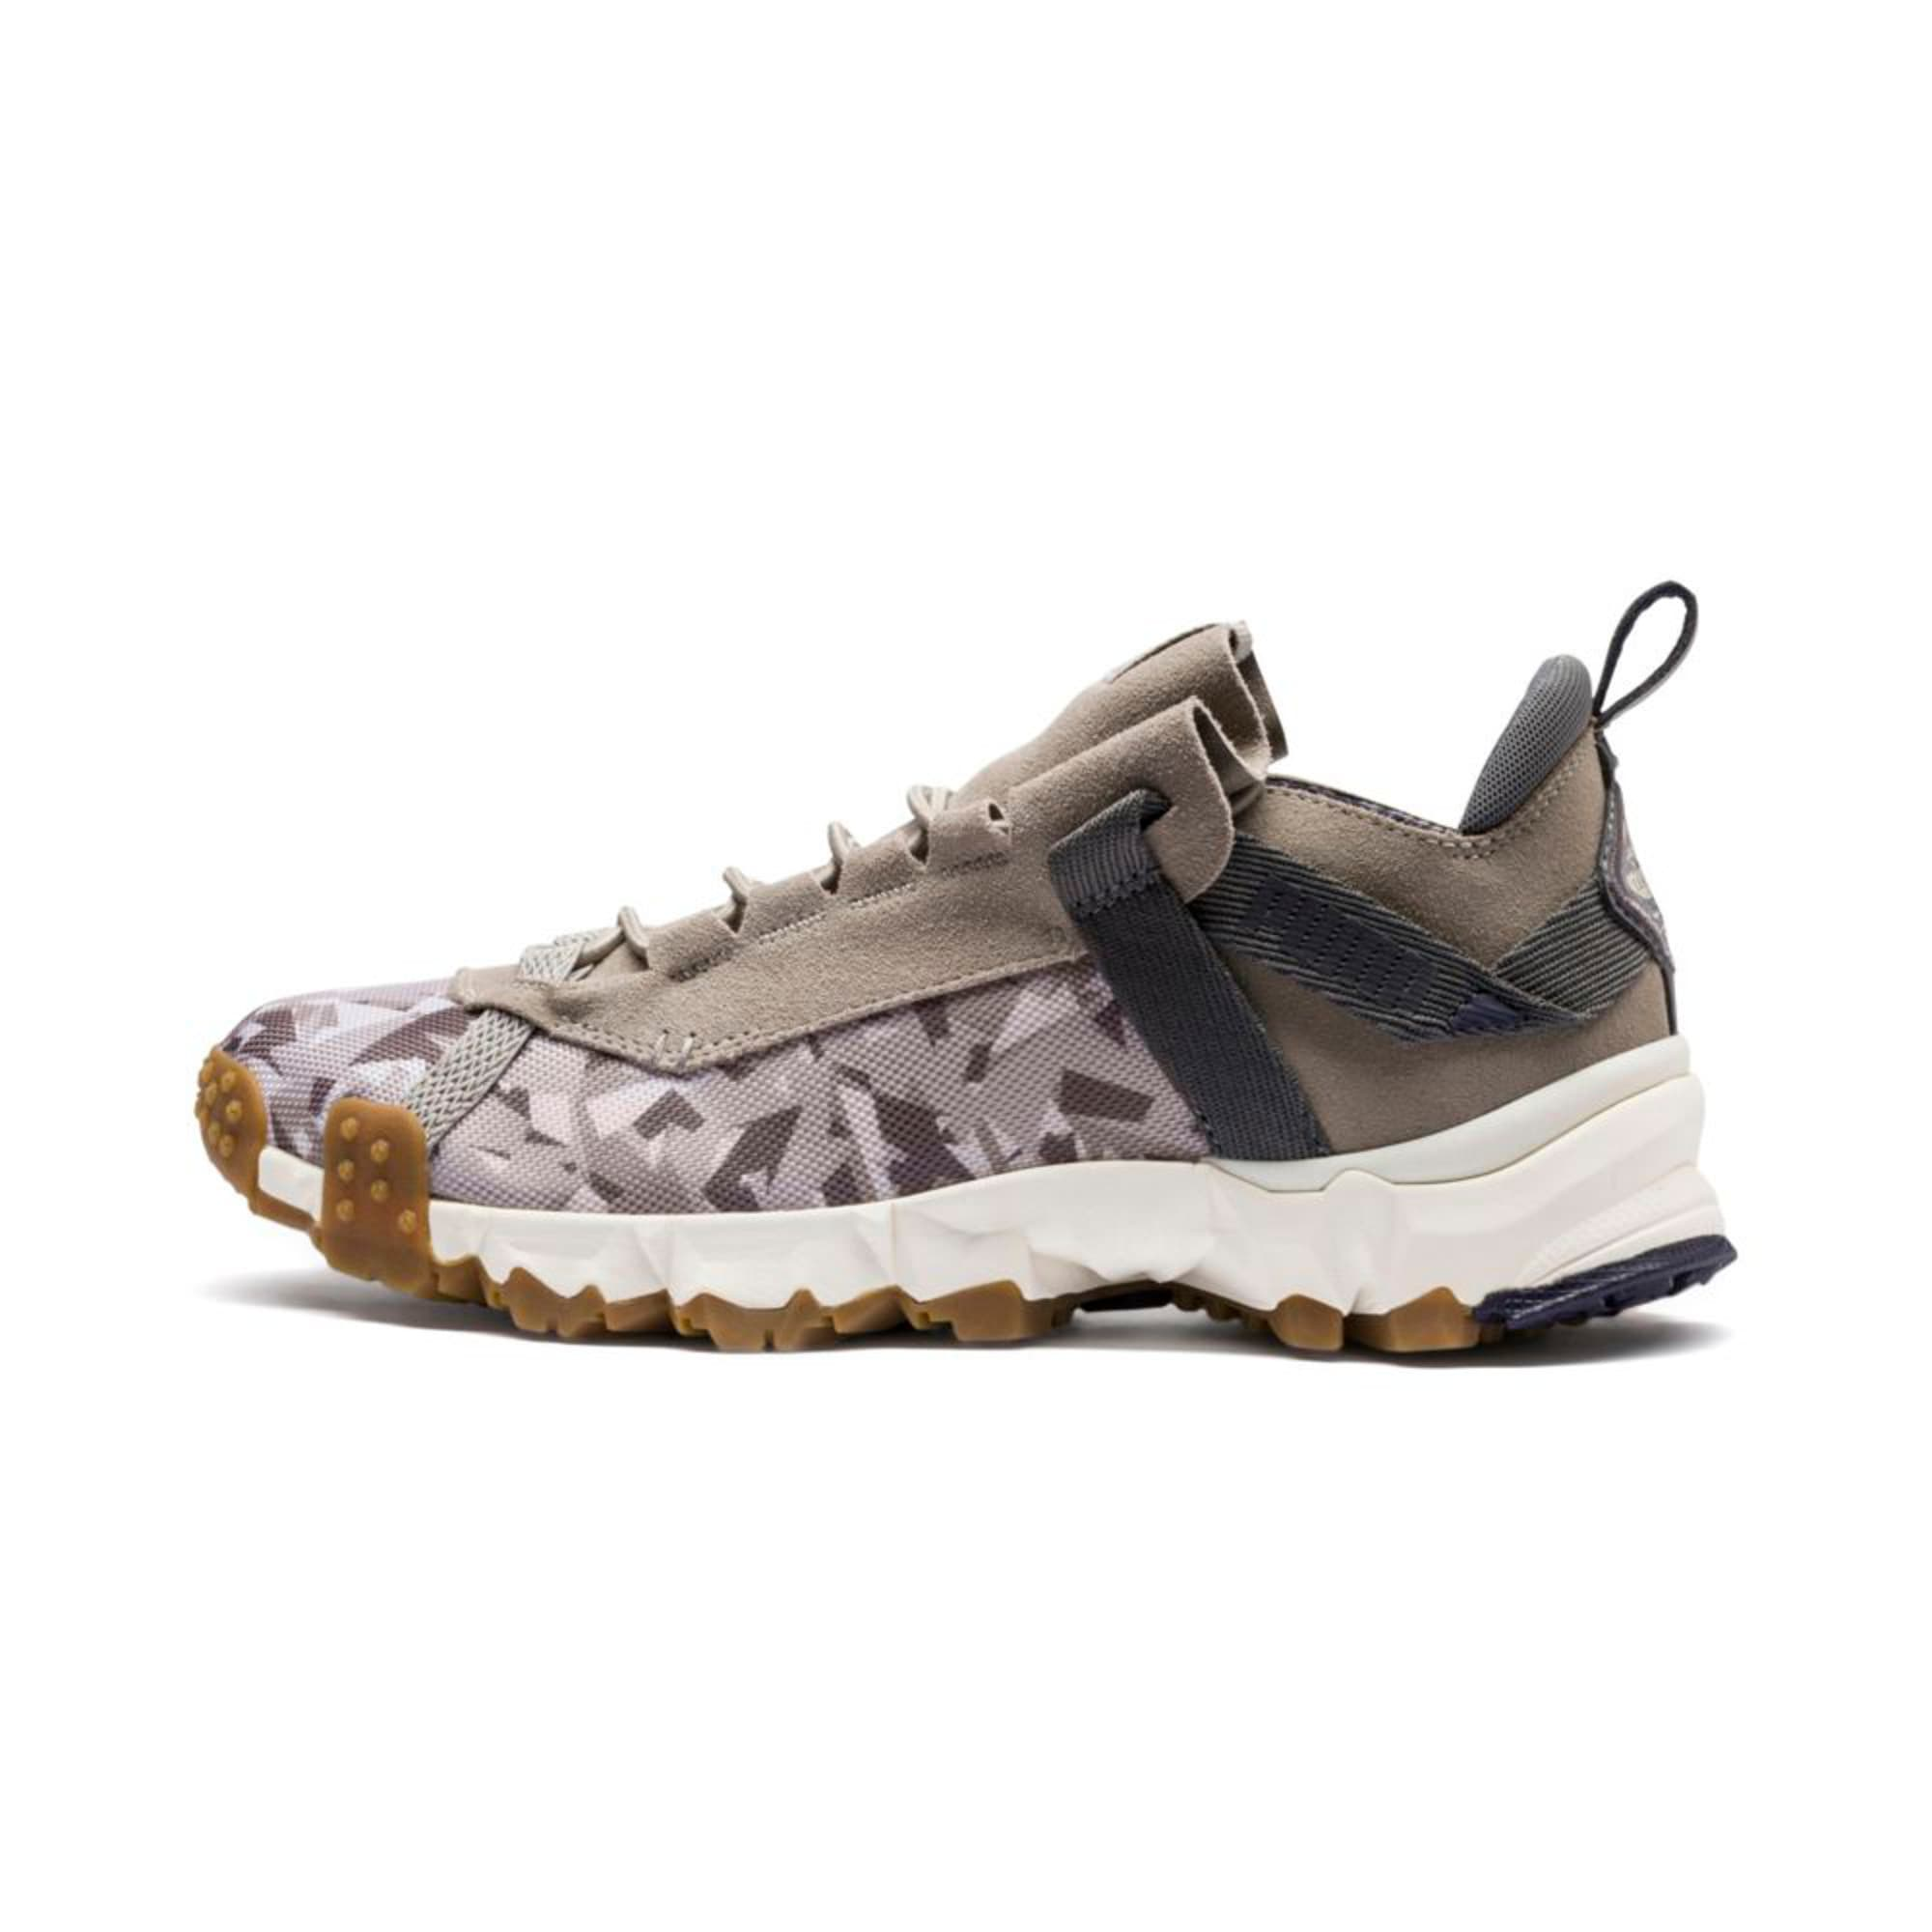 Thumbnail 1 of Trailfox Camo Trainers, Elephant Skin-Whisper White, medium-IND